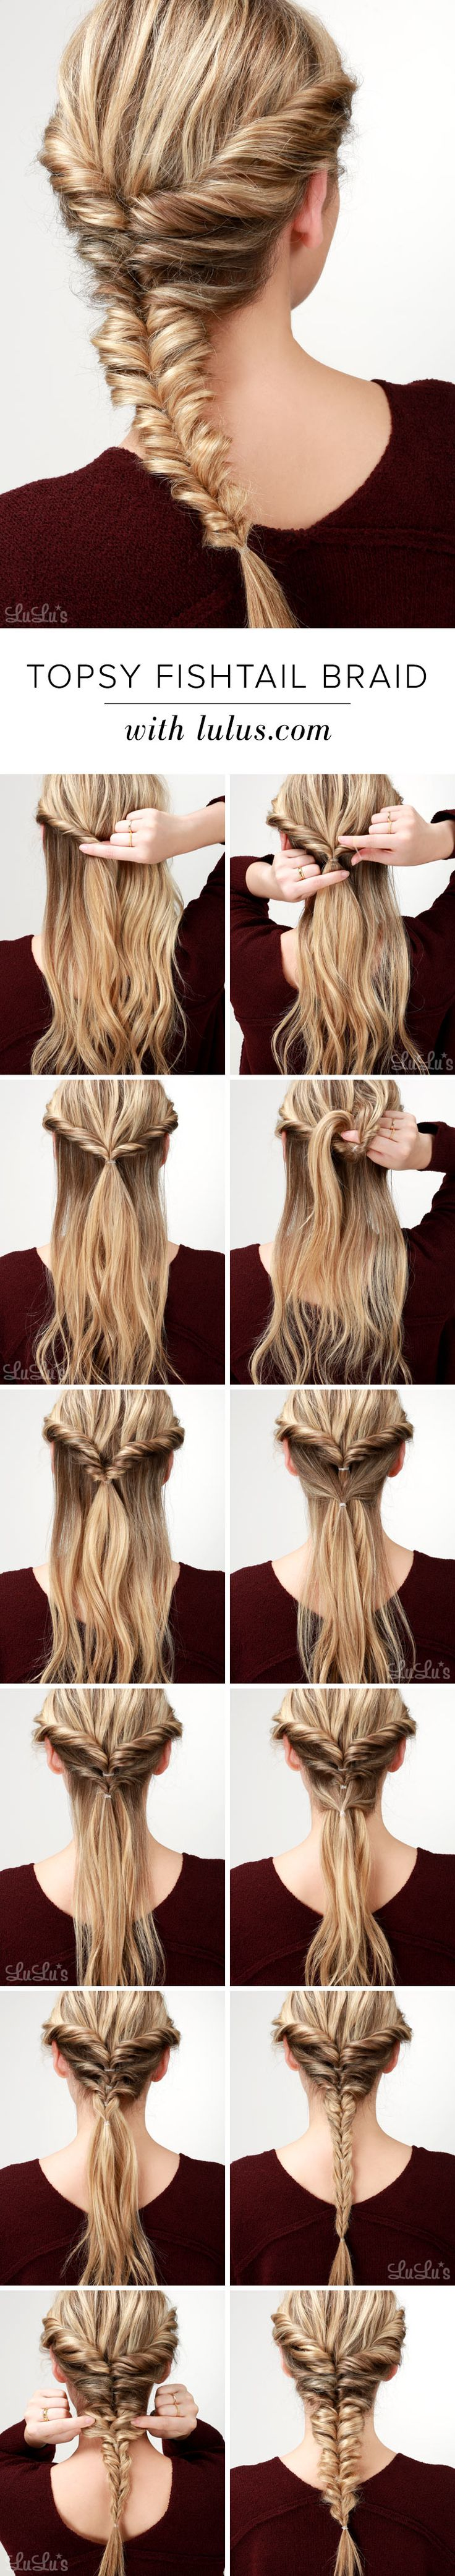 122 best Hairspiration images on Pinterest